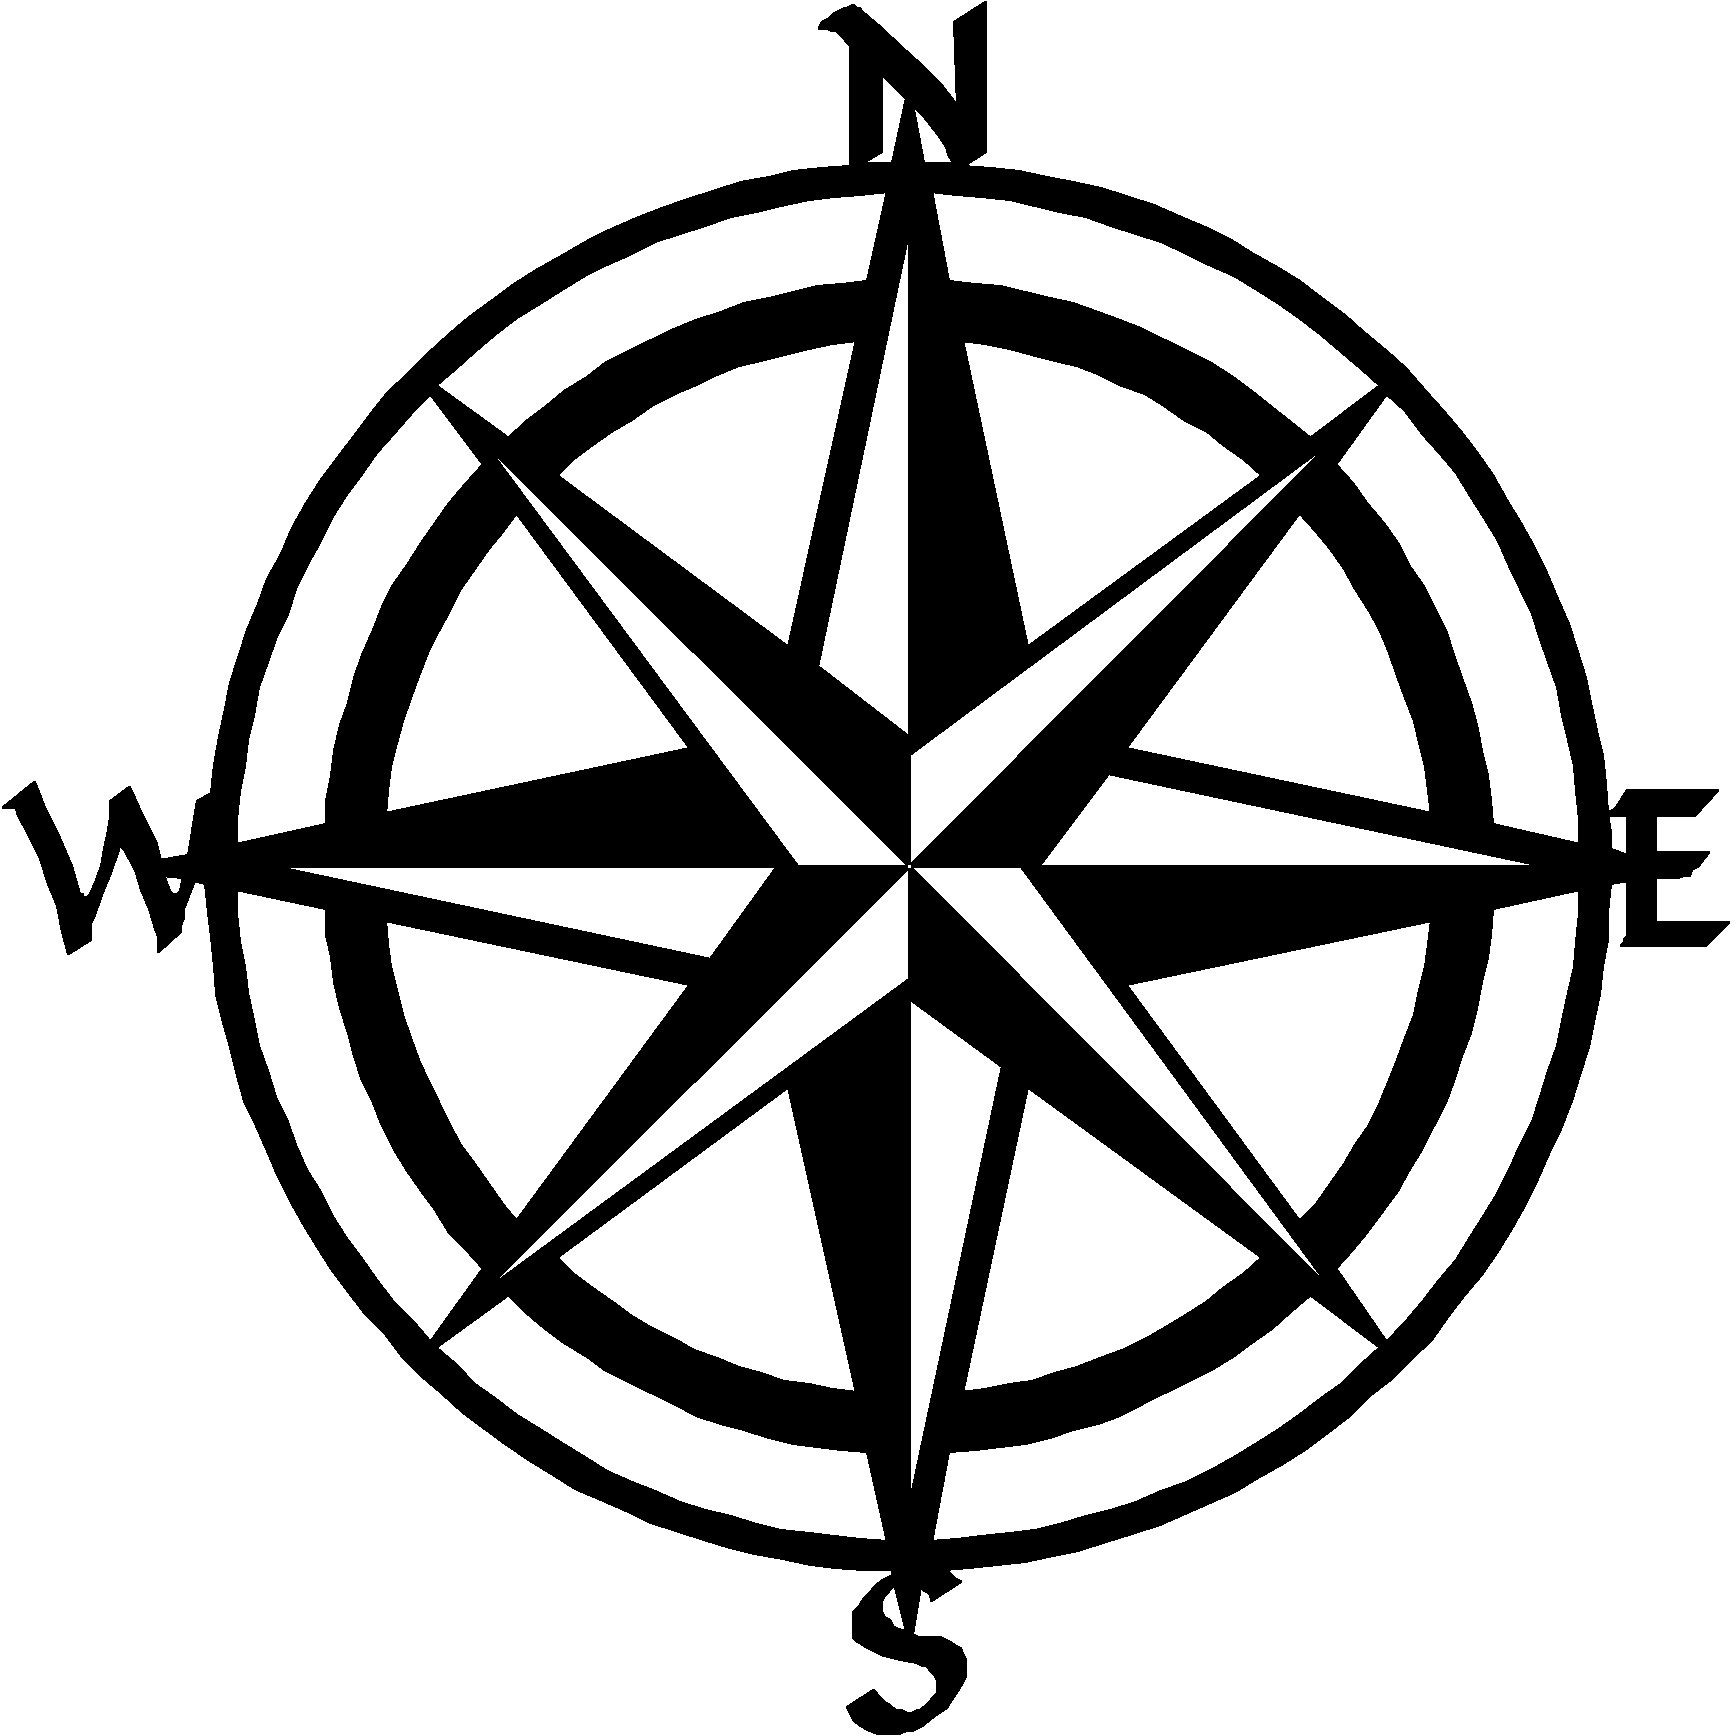 Nautical compass clipart 8 » Clipart Station.